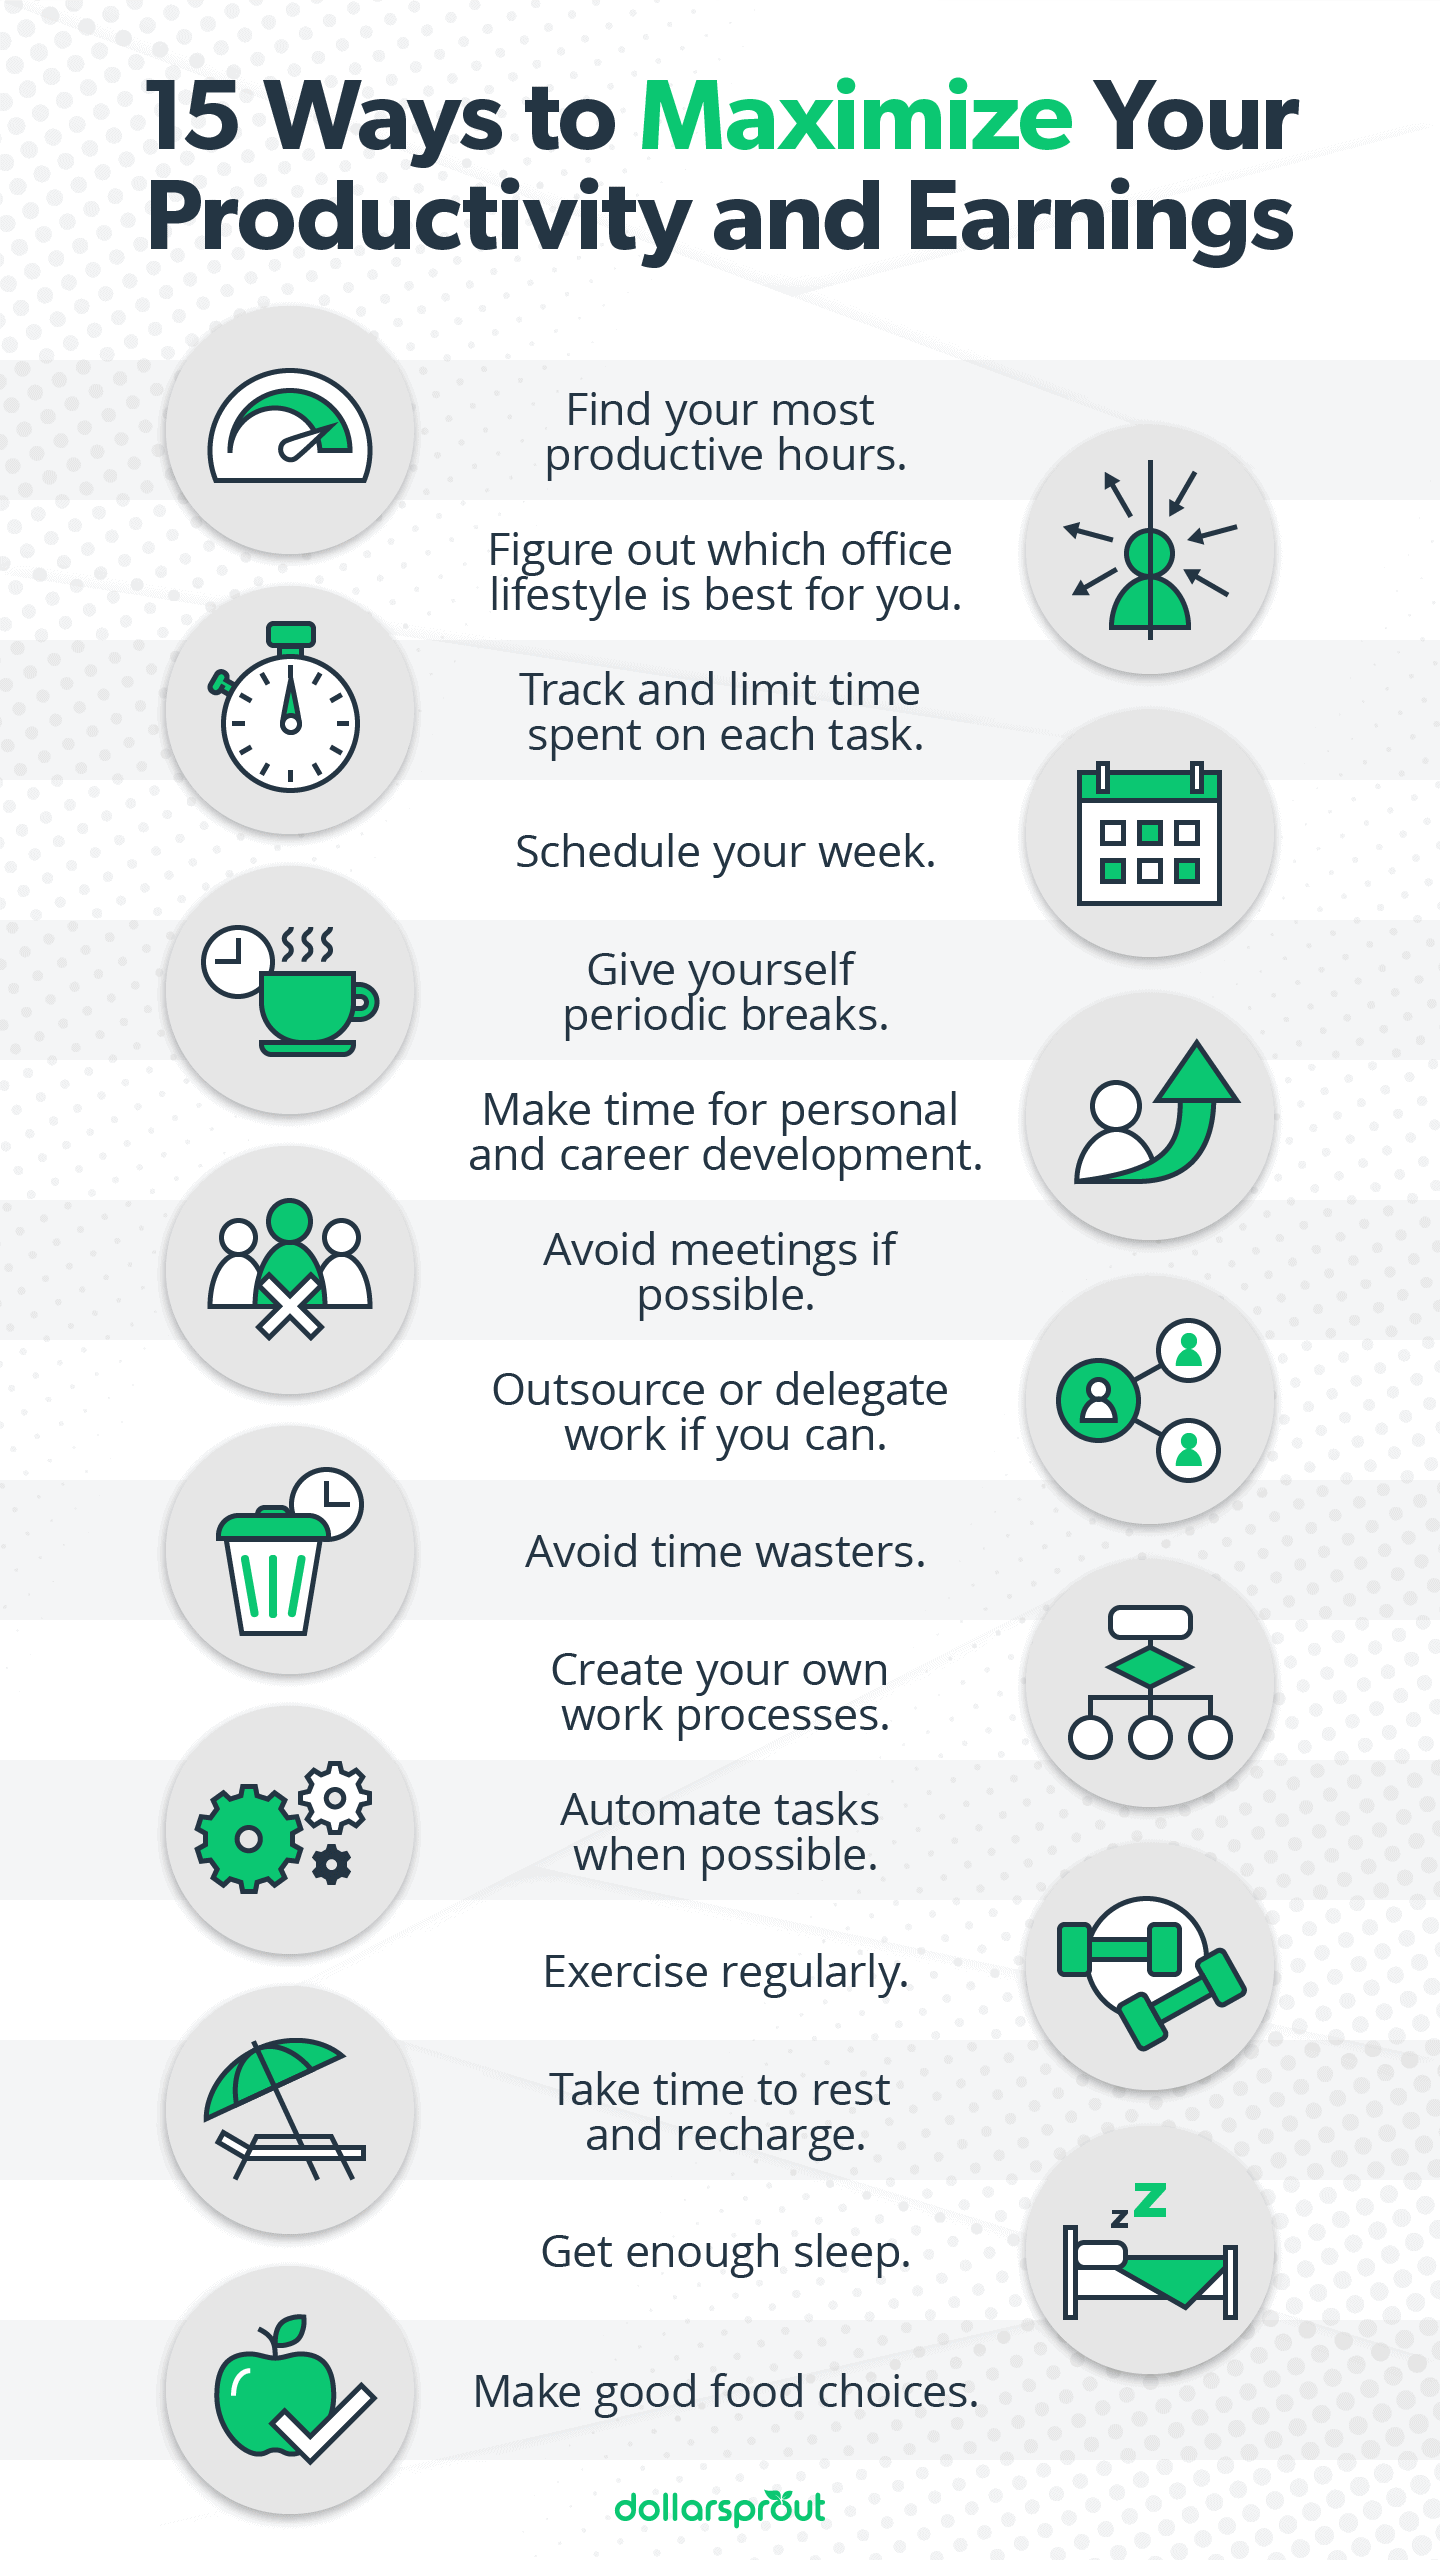 Ways to Maximize Your Productivity and Earnings